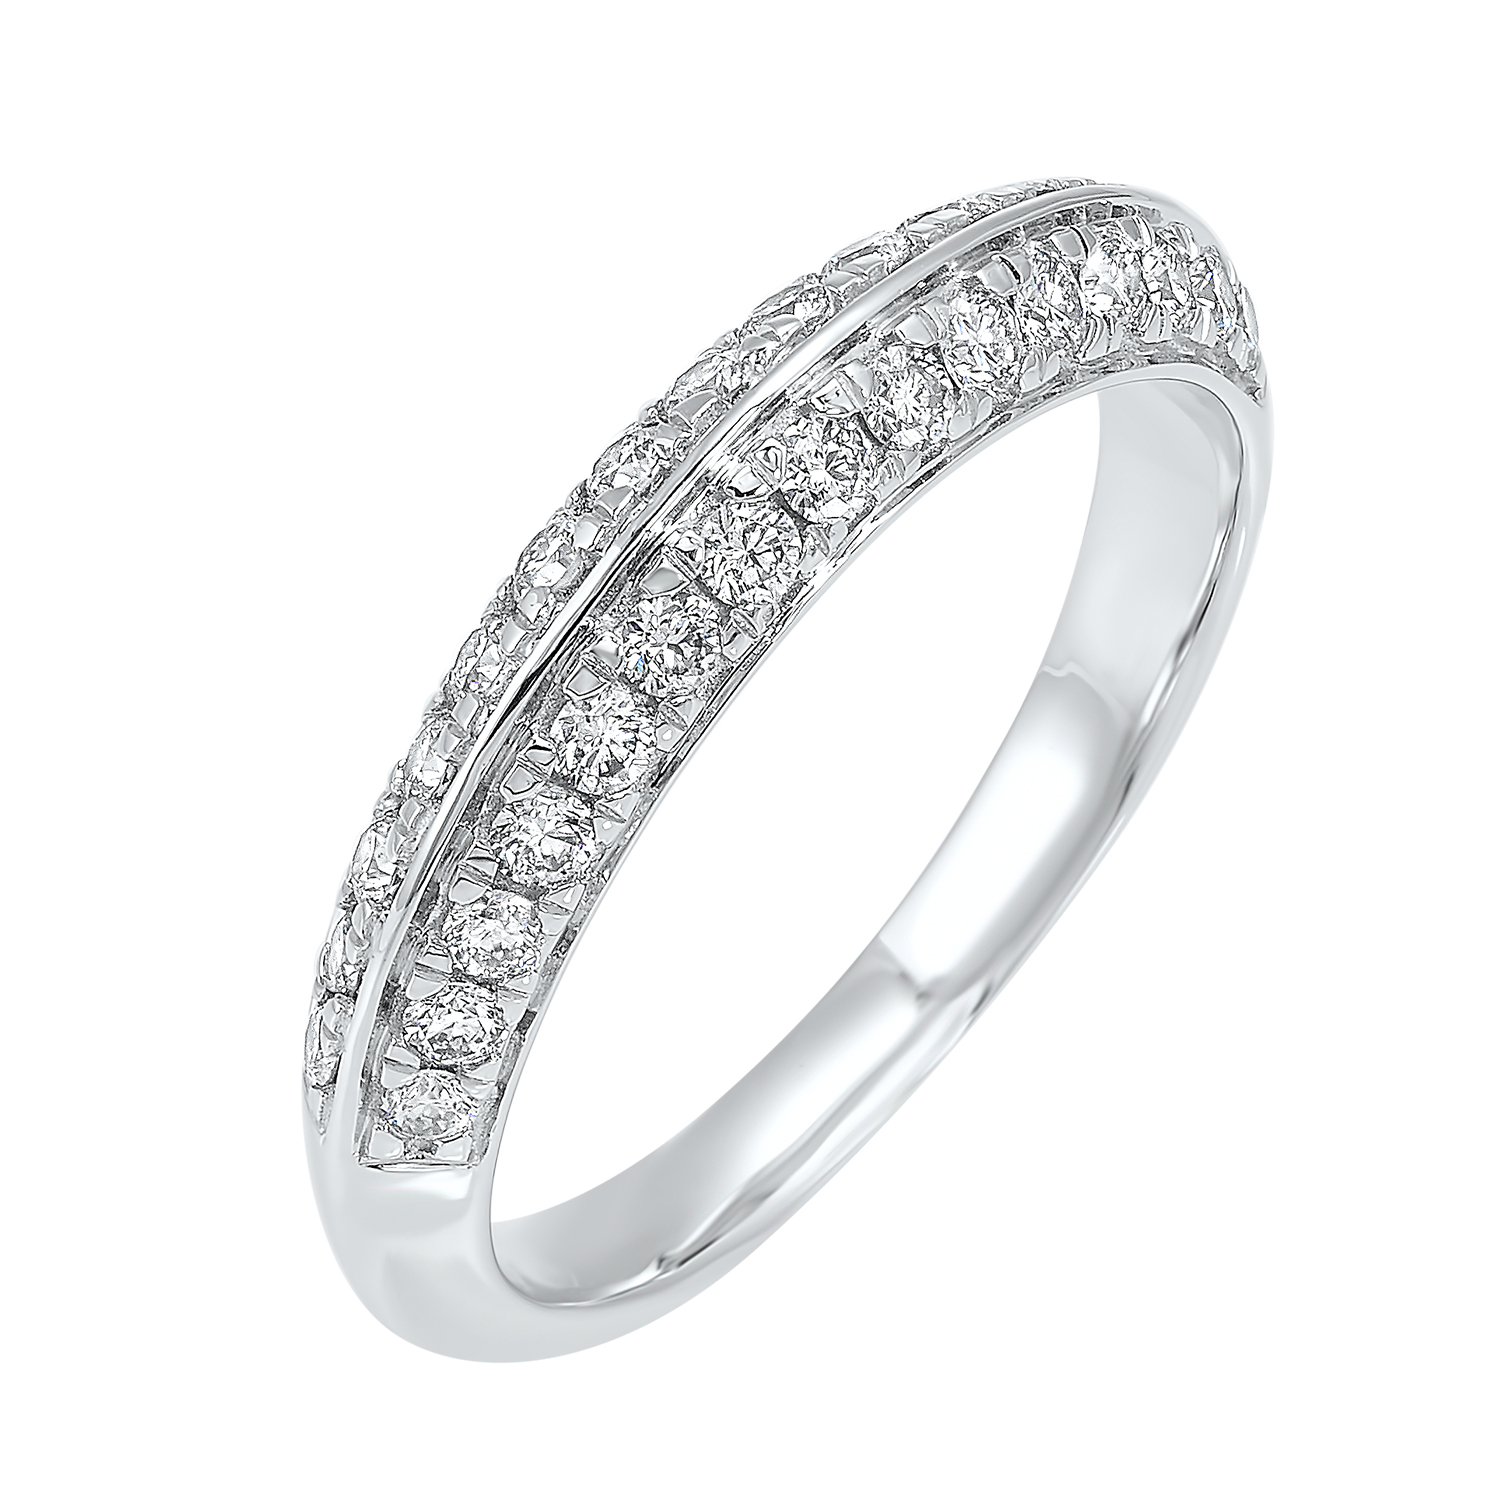 Multi-Row Diamond Ring in 14K White Gold (1/4 ct. tw.) Moseley Diamond Showcase Inc Columbia, SC